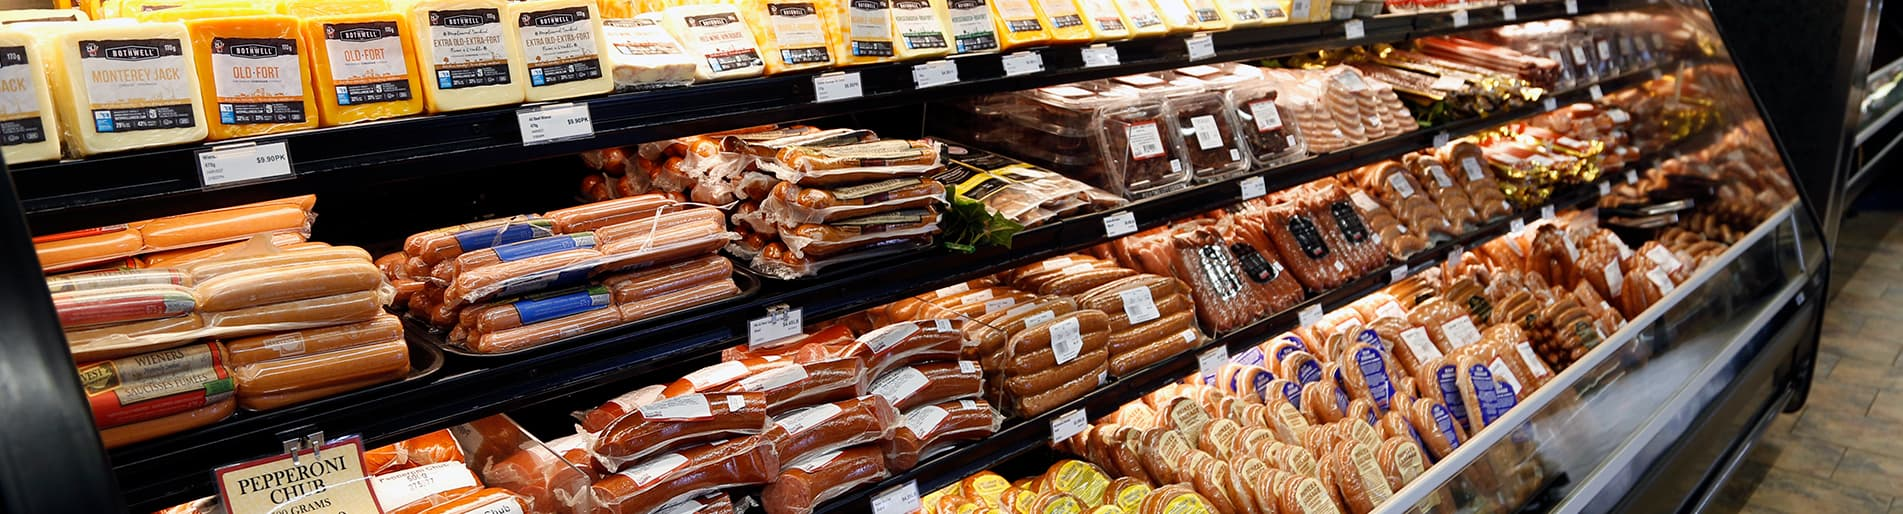 deli, meat, cheese, salads, soups, sides